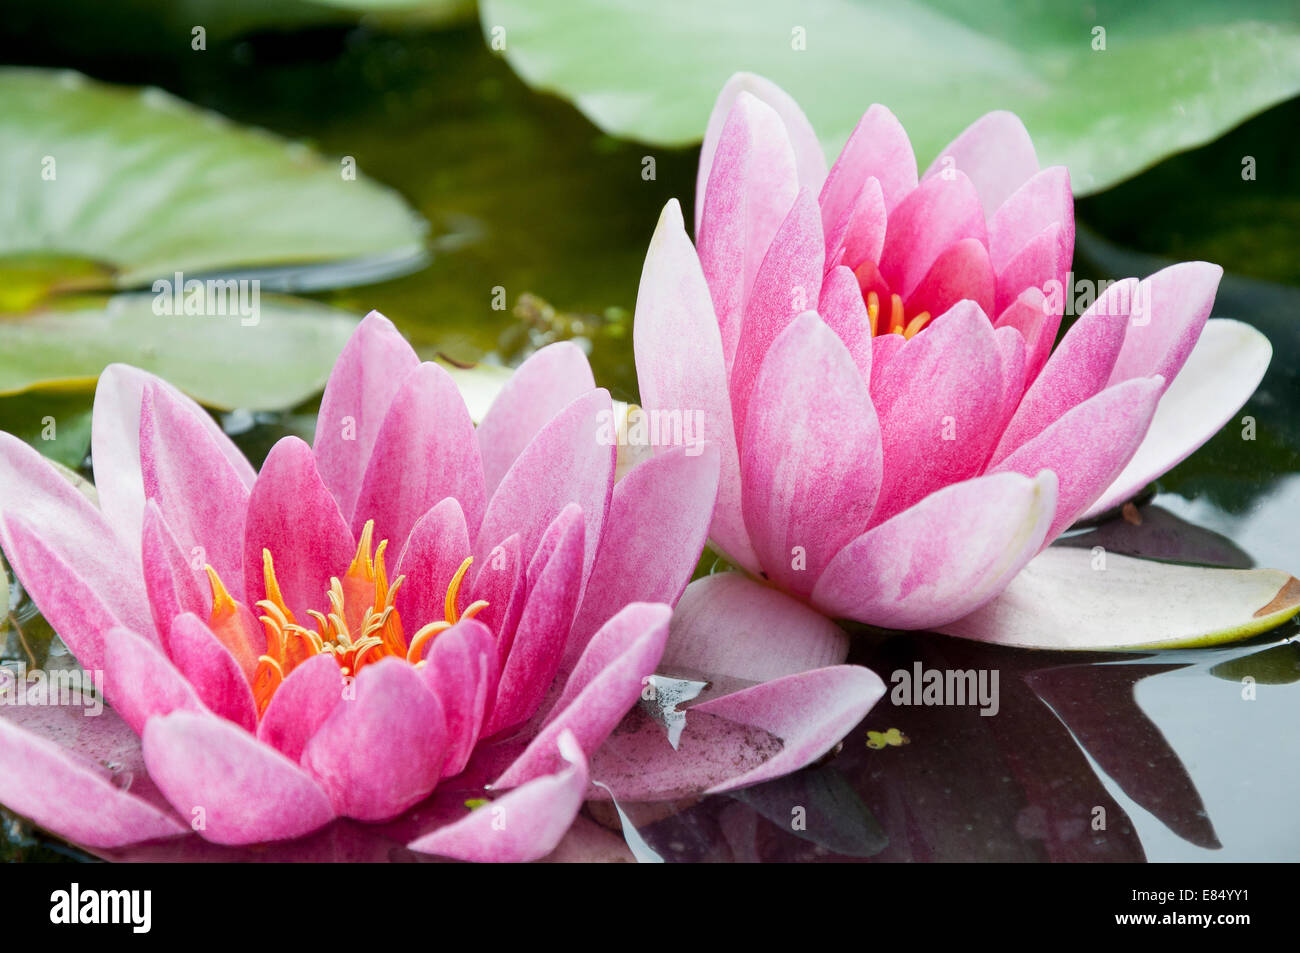 Waterlily Flowers Stock Photos Waterlily Flowers Stock Images Alamy